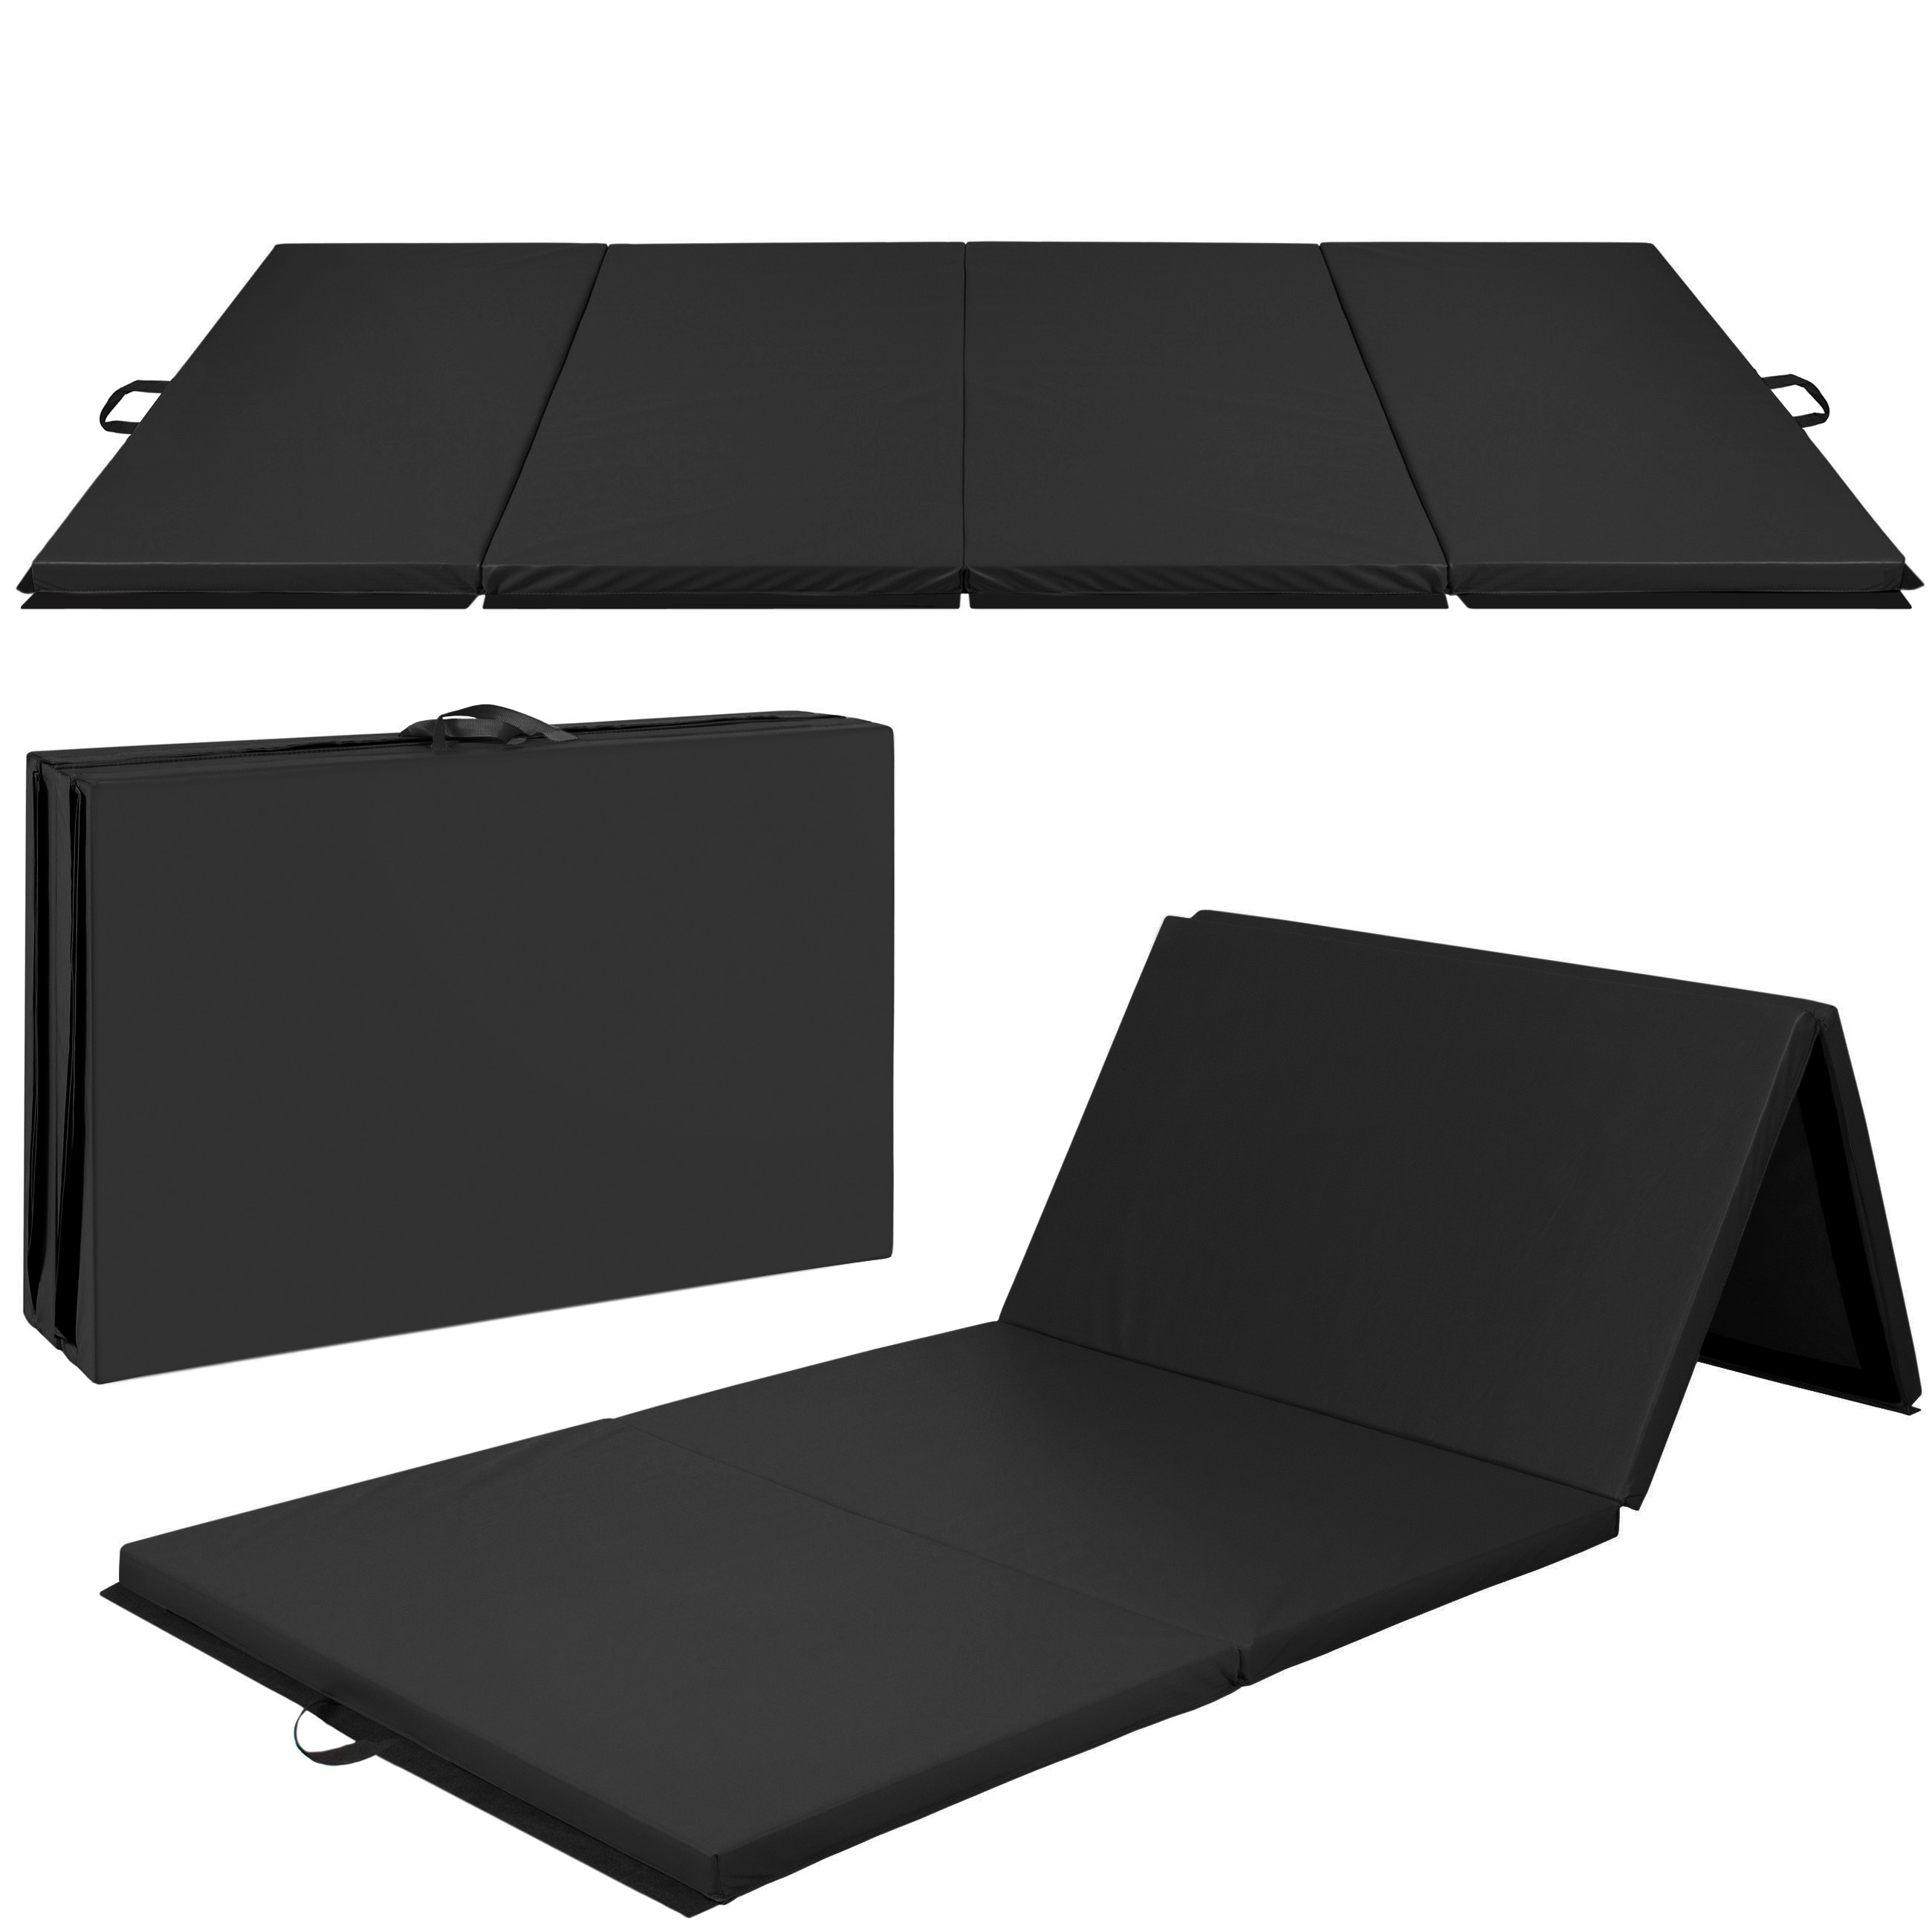 Best Choice Products Folding 10' Exercise Gym Mat For Gymnastics, Aerobics, Yoga, Martial Arts Black by